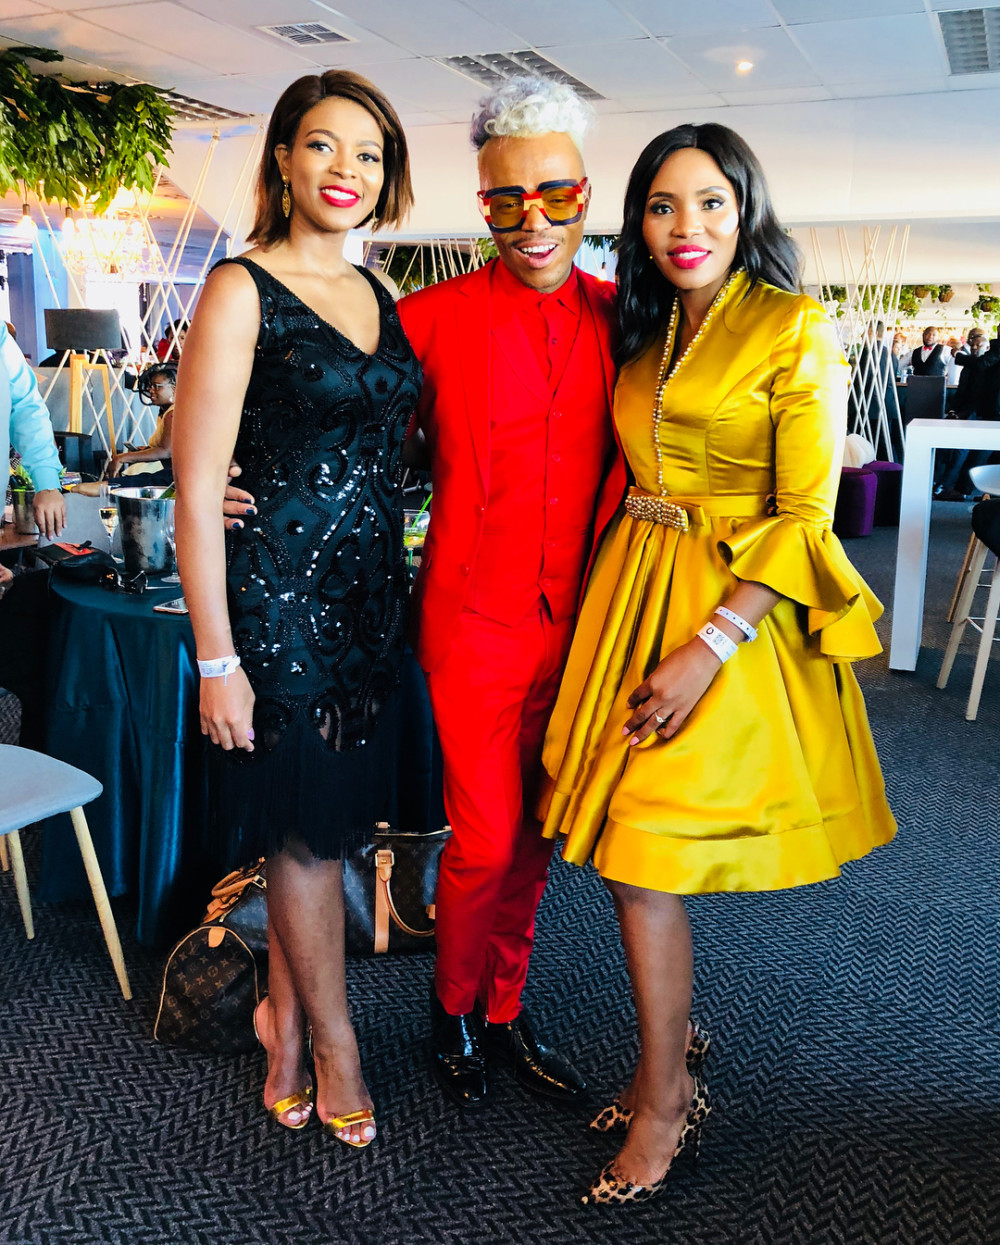 Vdj2018 The South African Stars Come Out To Slay At